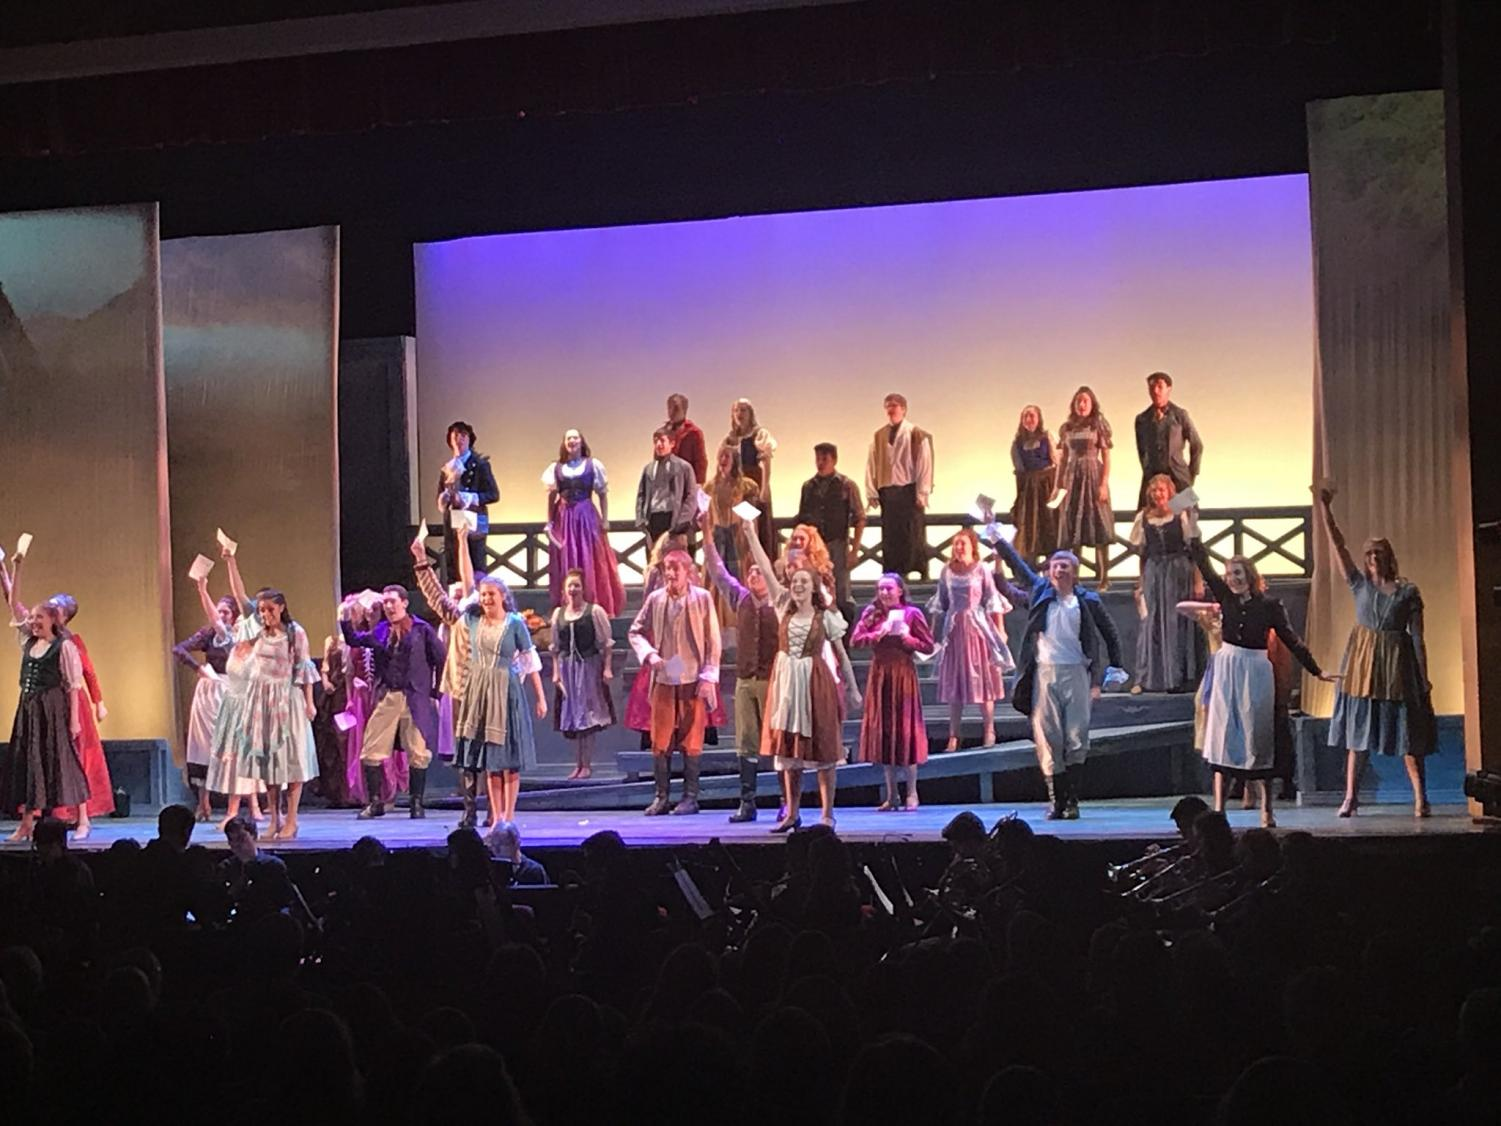 From Thursday, April 19 to Saturday, April 21, Drama Club students performed in